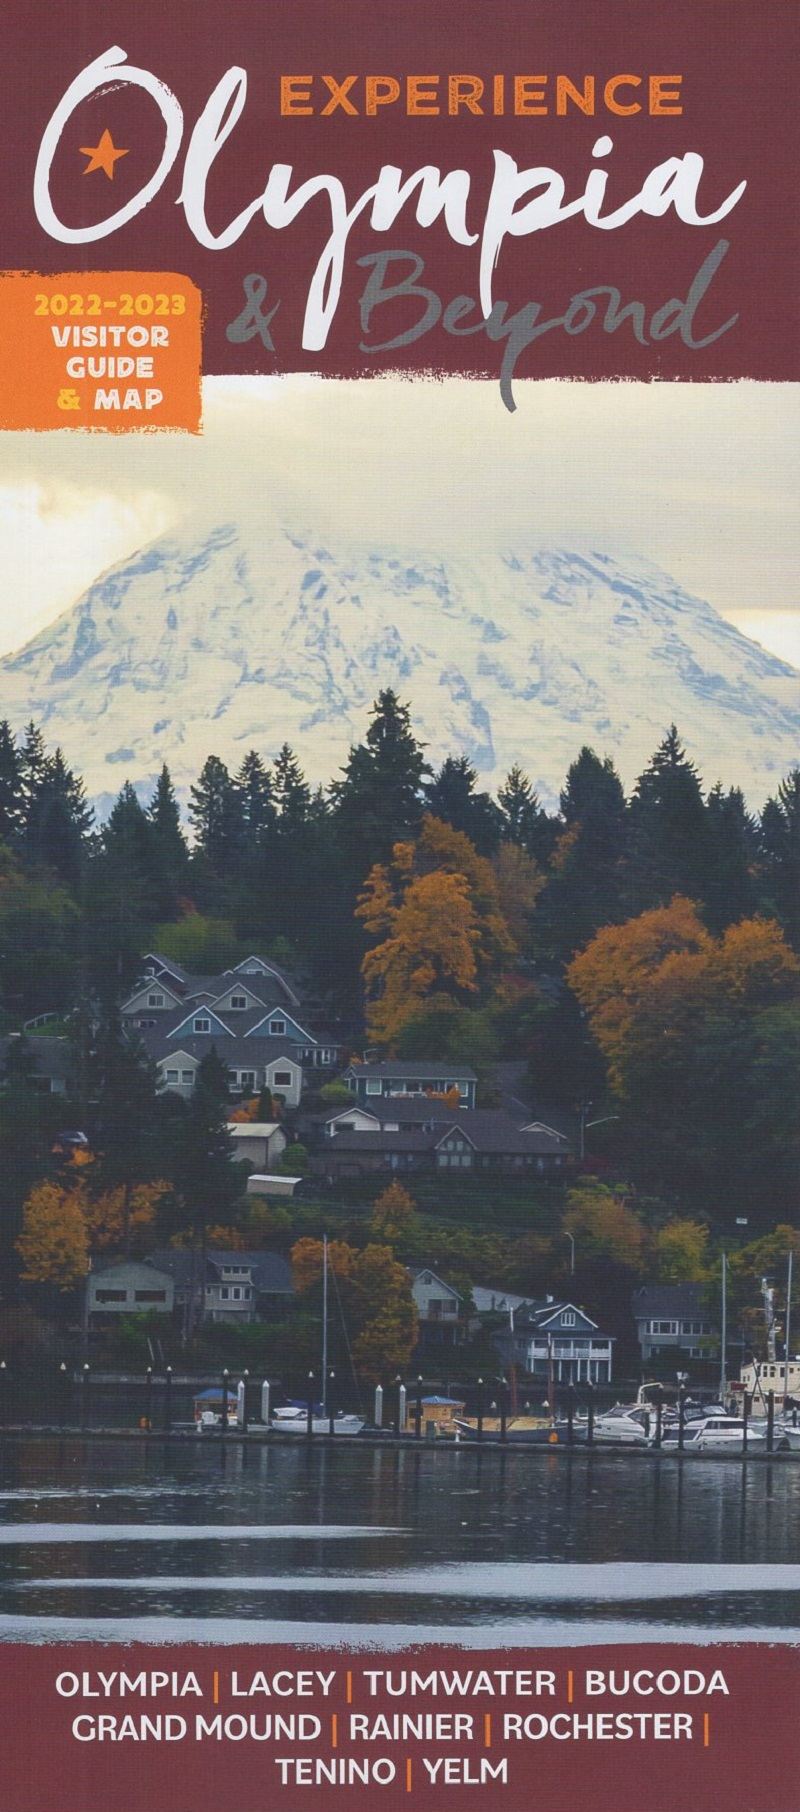 Olympia-Thurston Co. Vis Guide